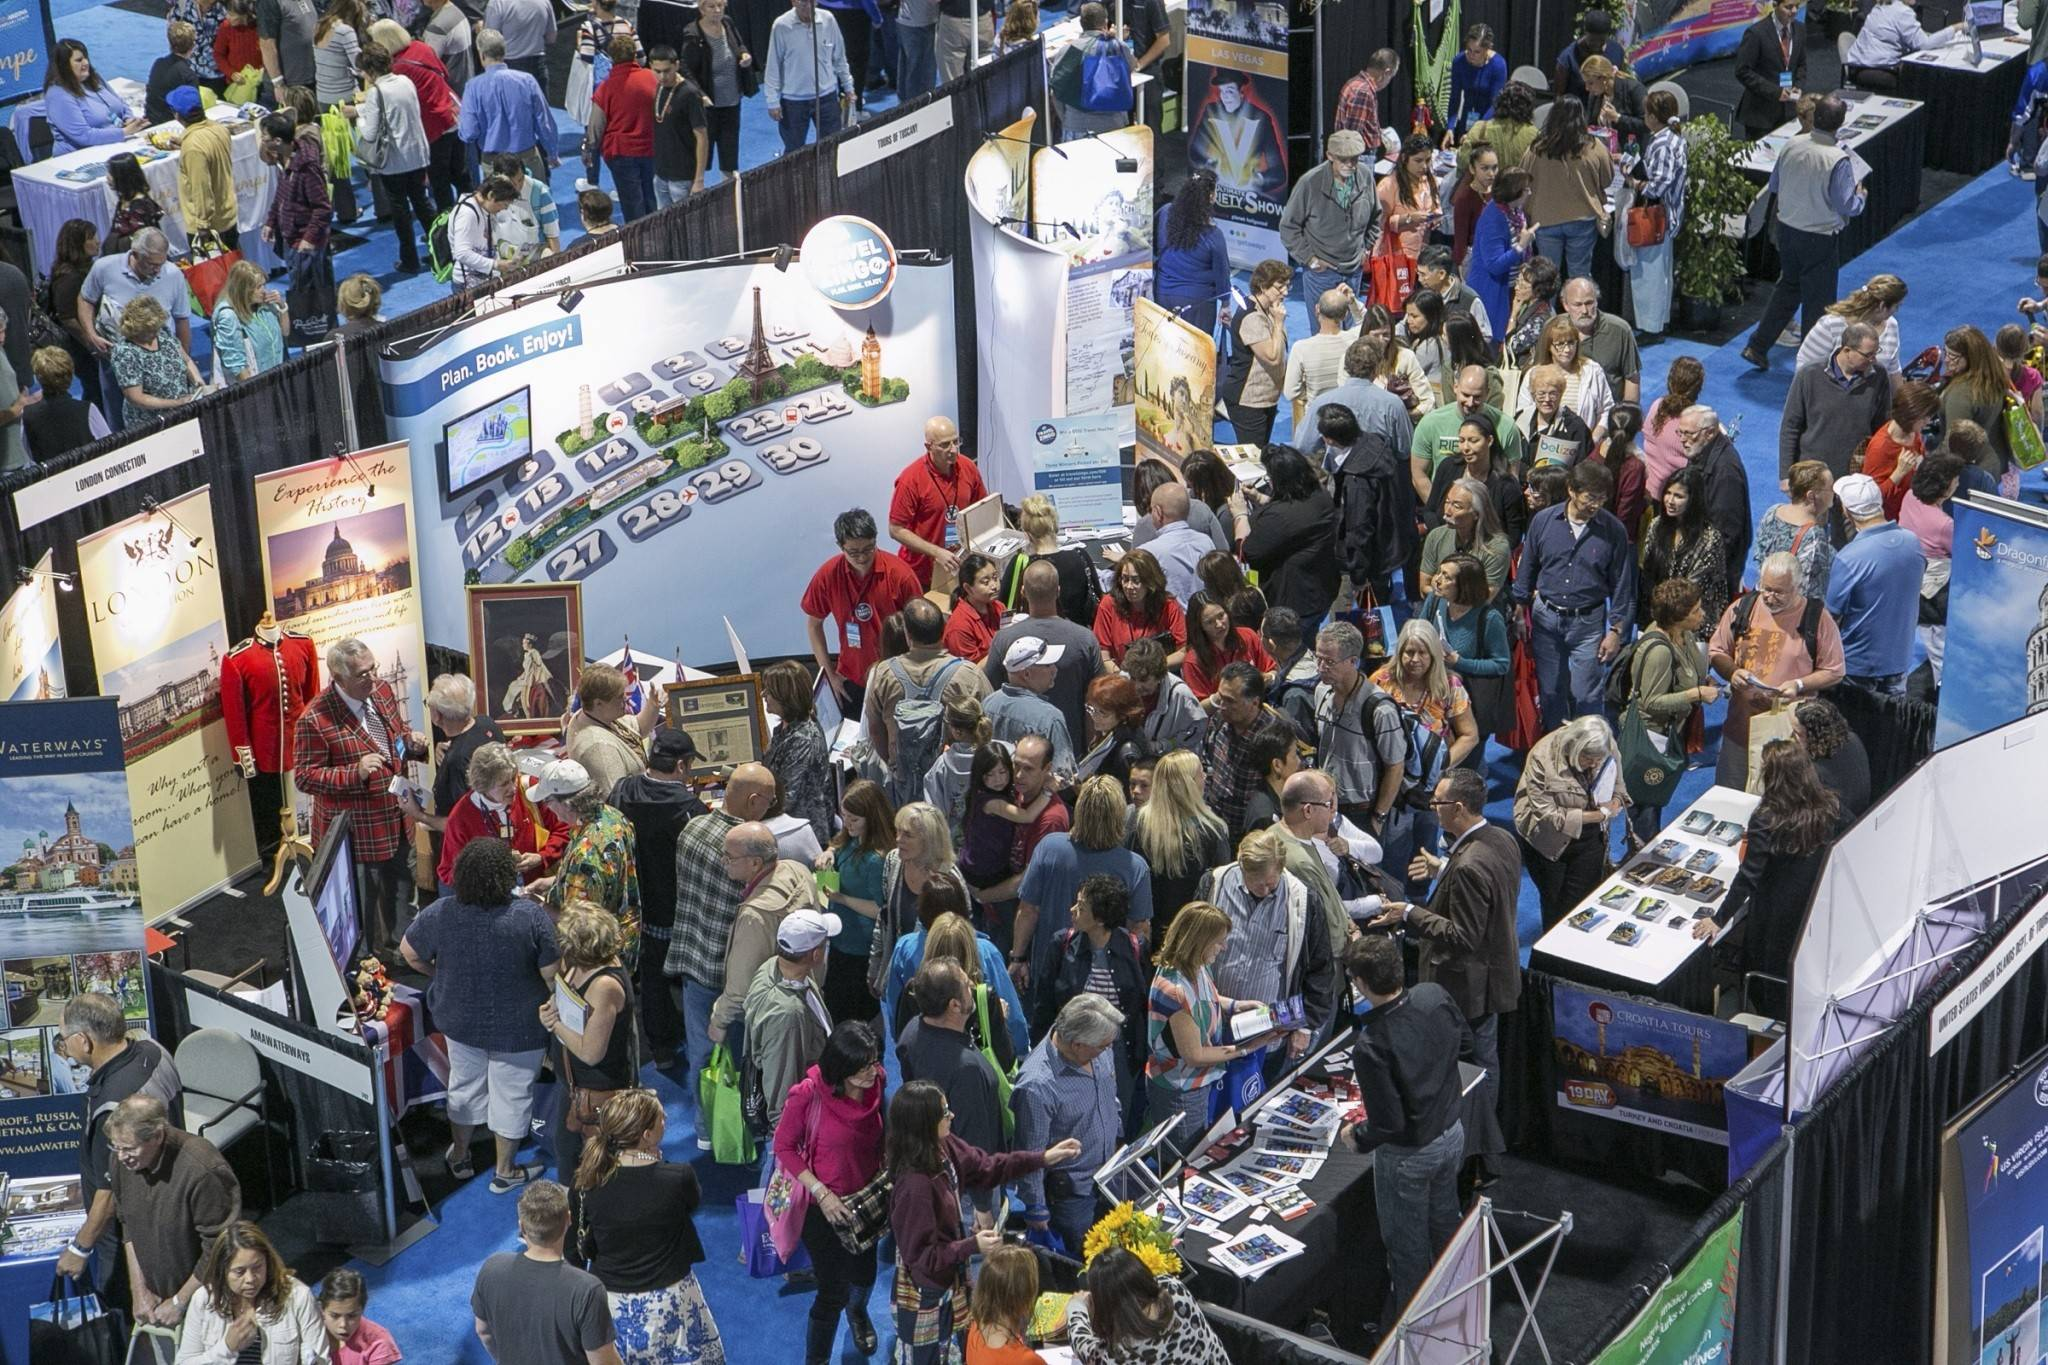 The floor of the Chicago Travel & Adventure Show, now in its 11th year.